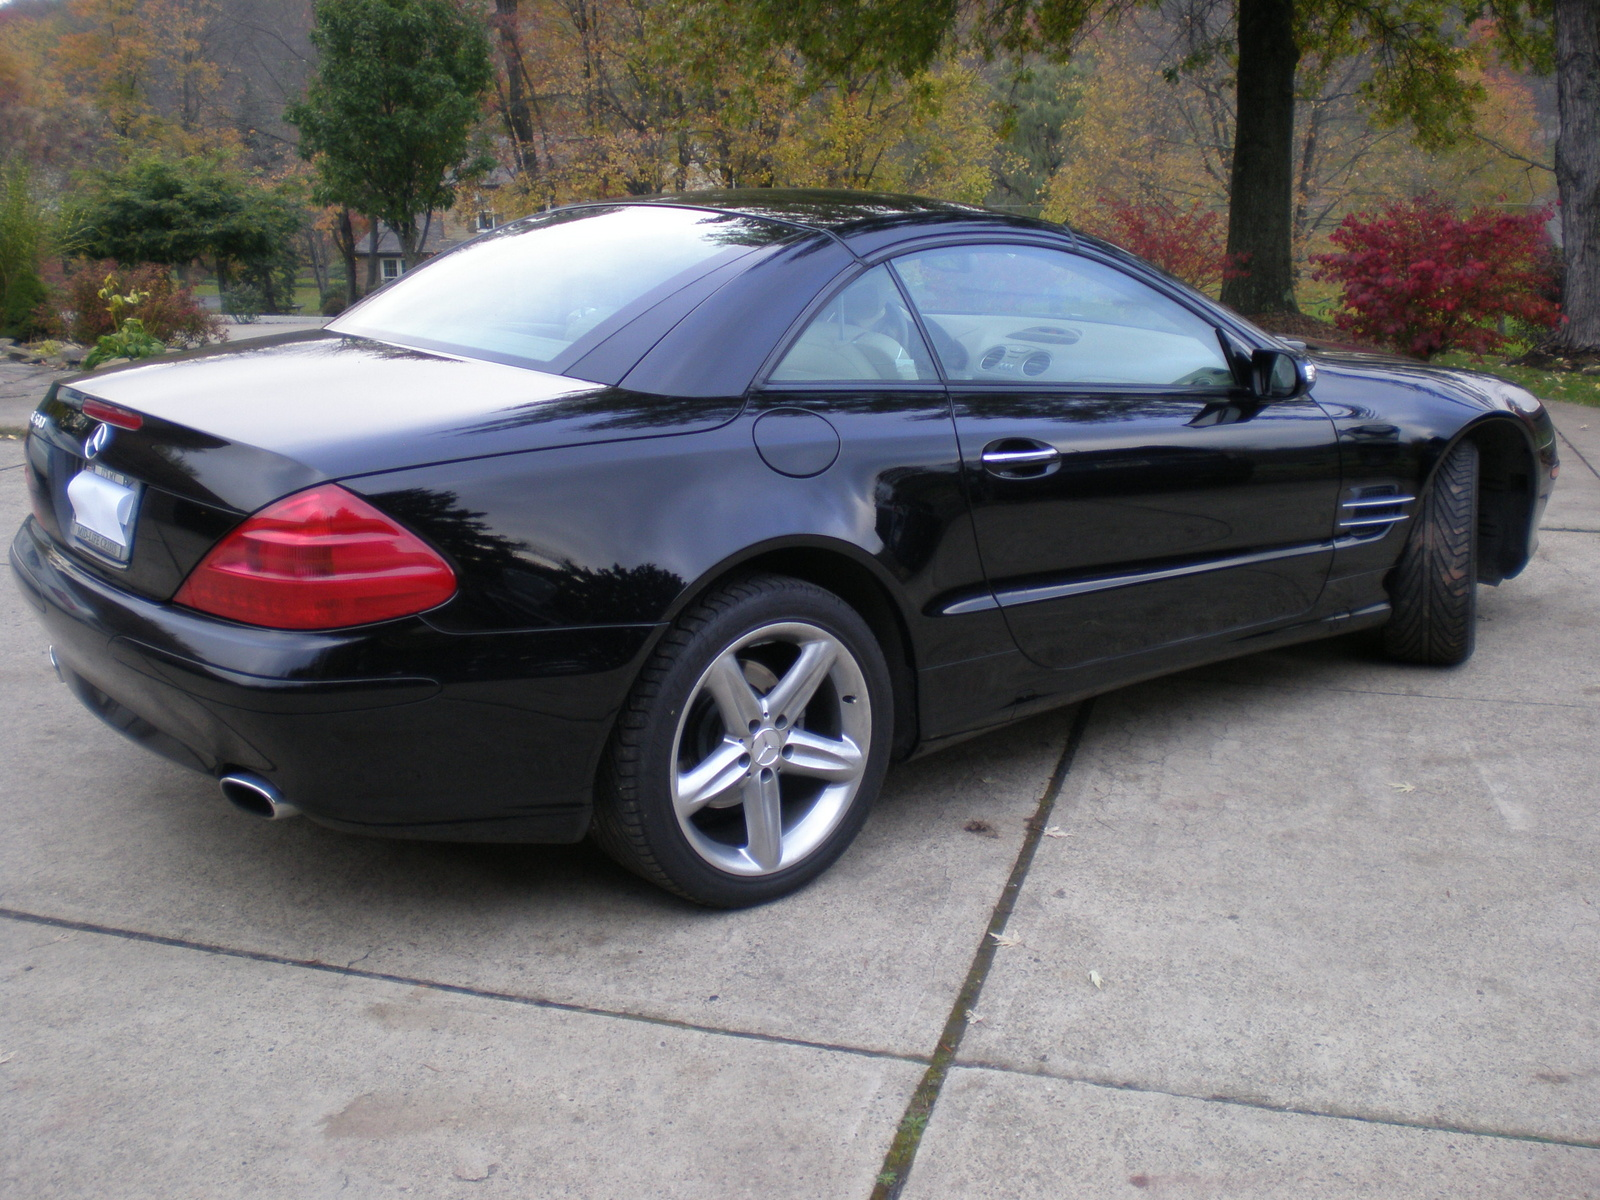 2004 mercedes benz sl class pictures cargurus for Mercedes benz sl class sl500